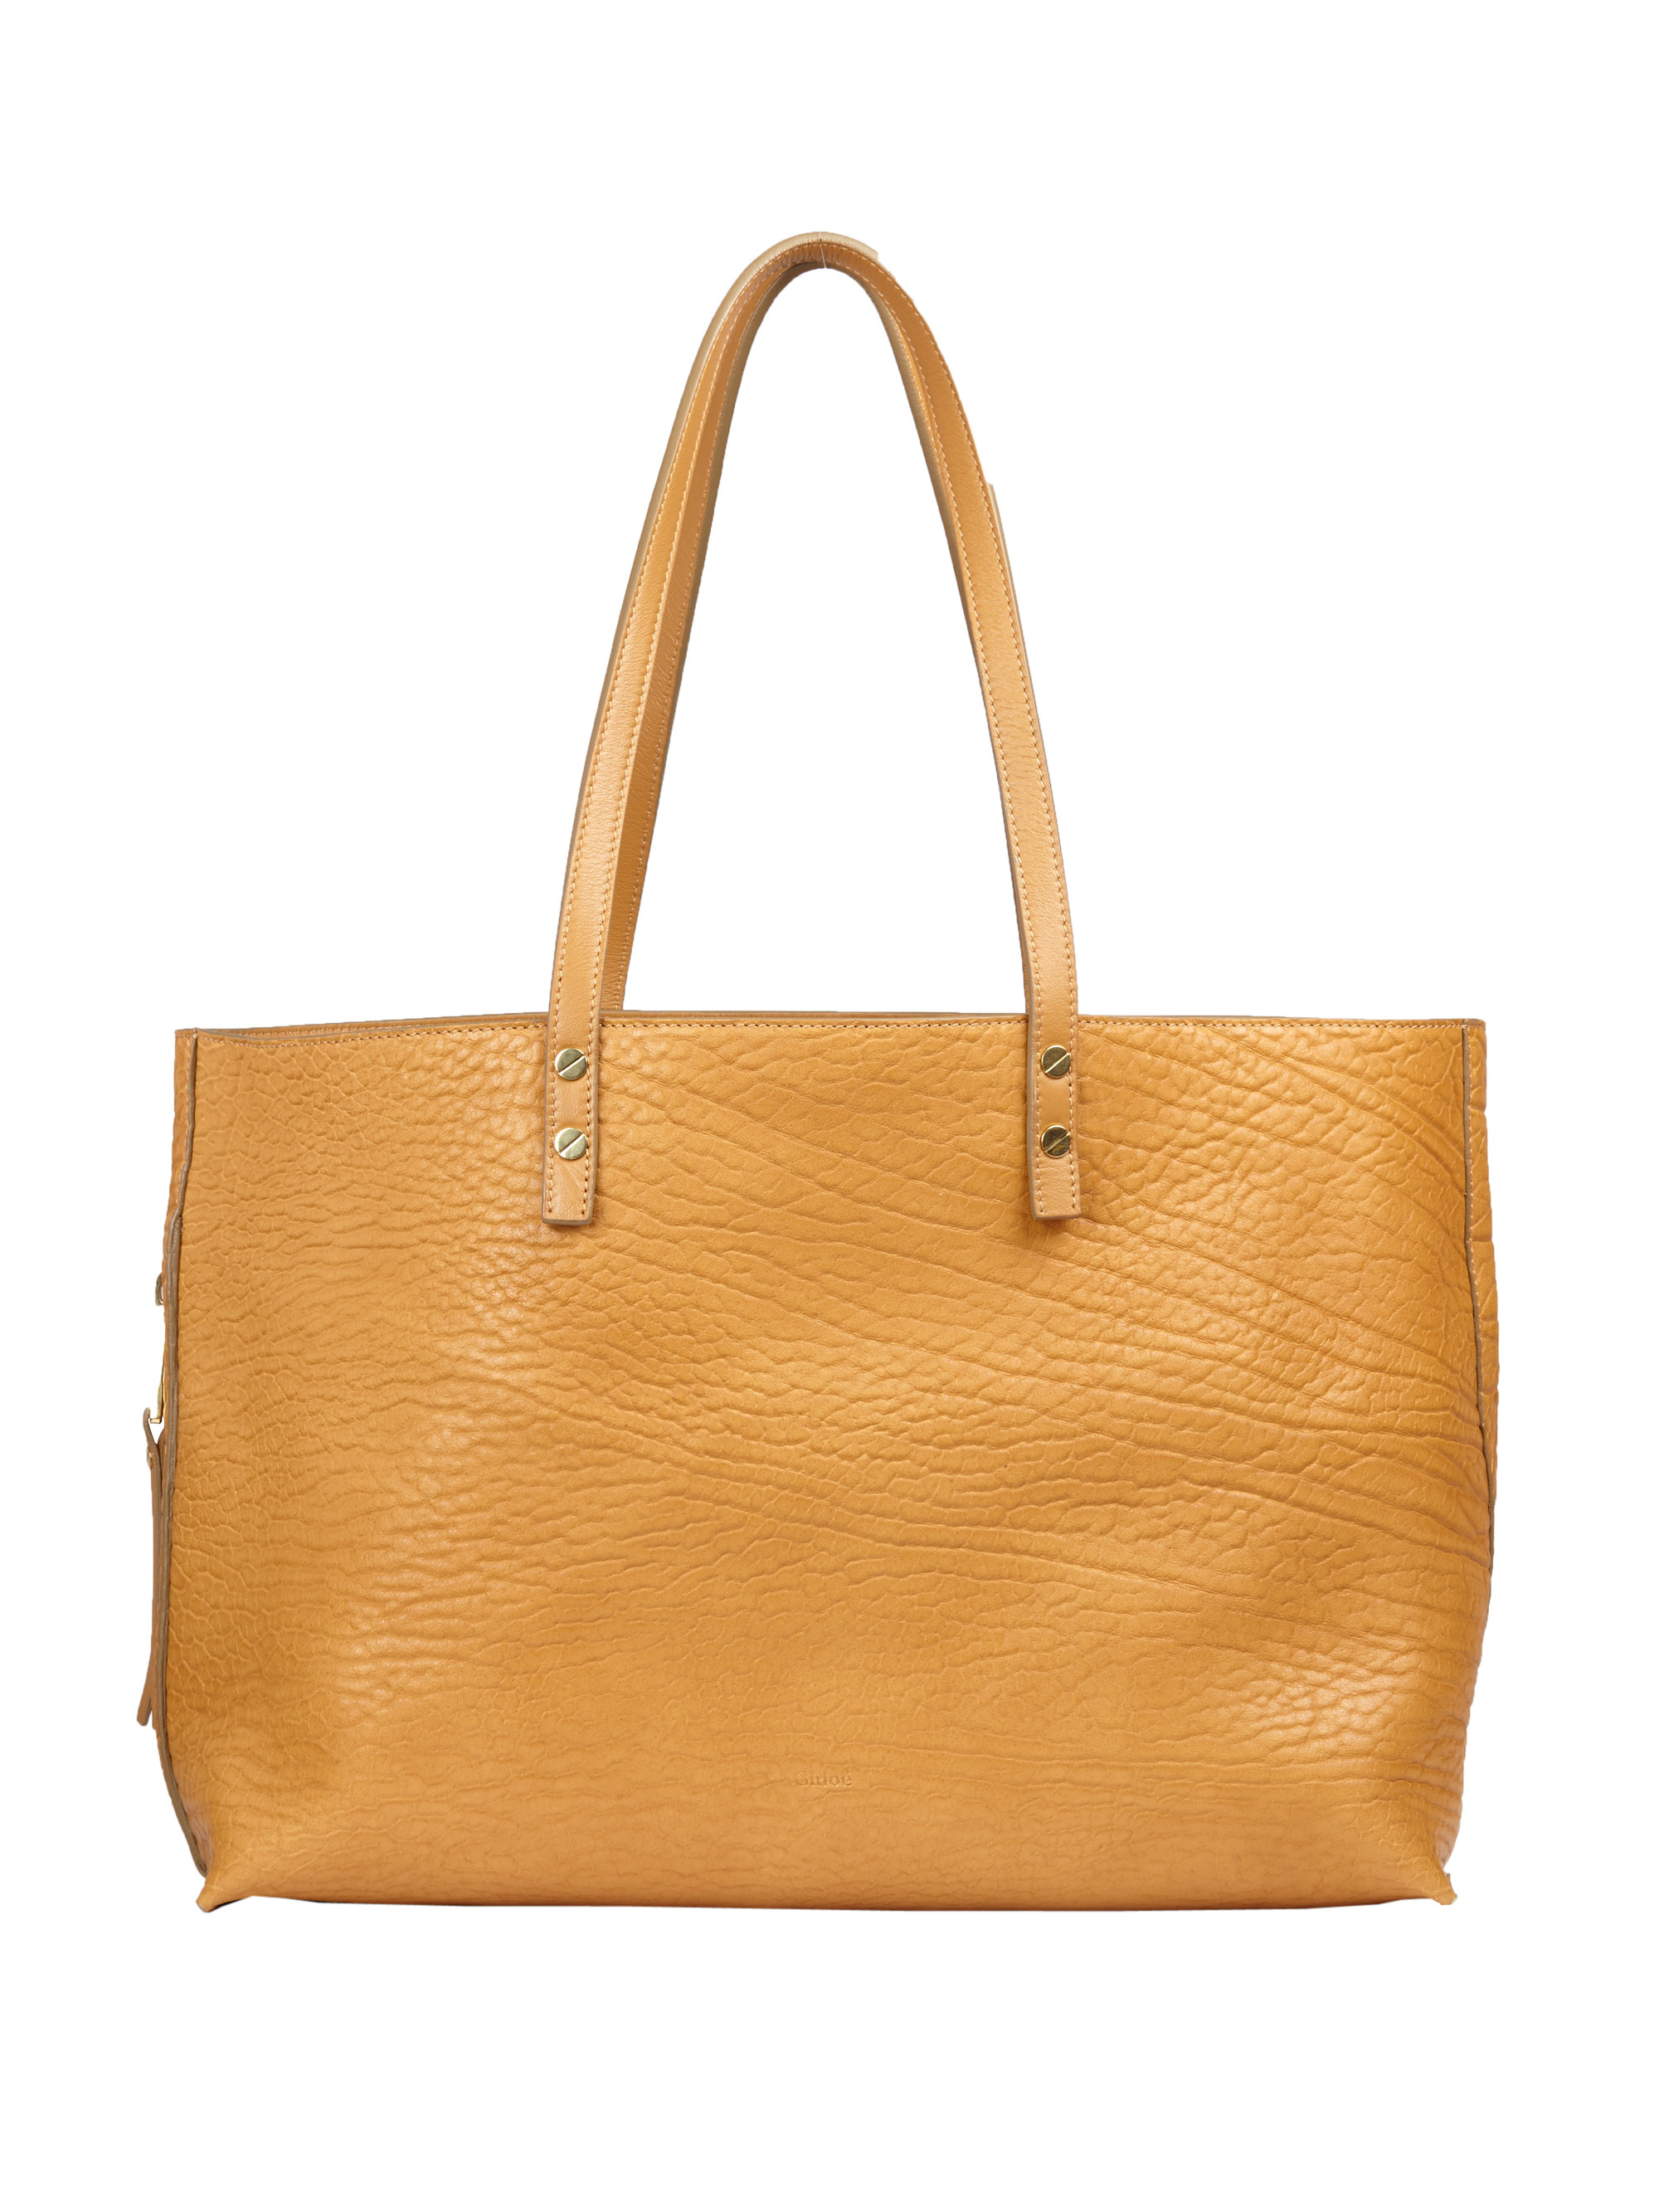 Chloé Dilan Large East-west Tote in Beige (SAVANNA) | Lyst